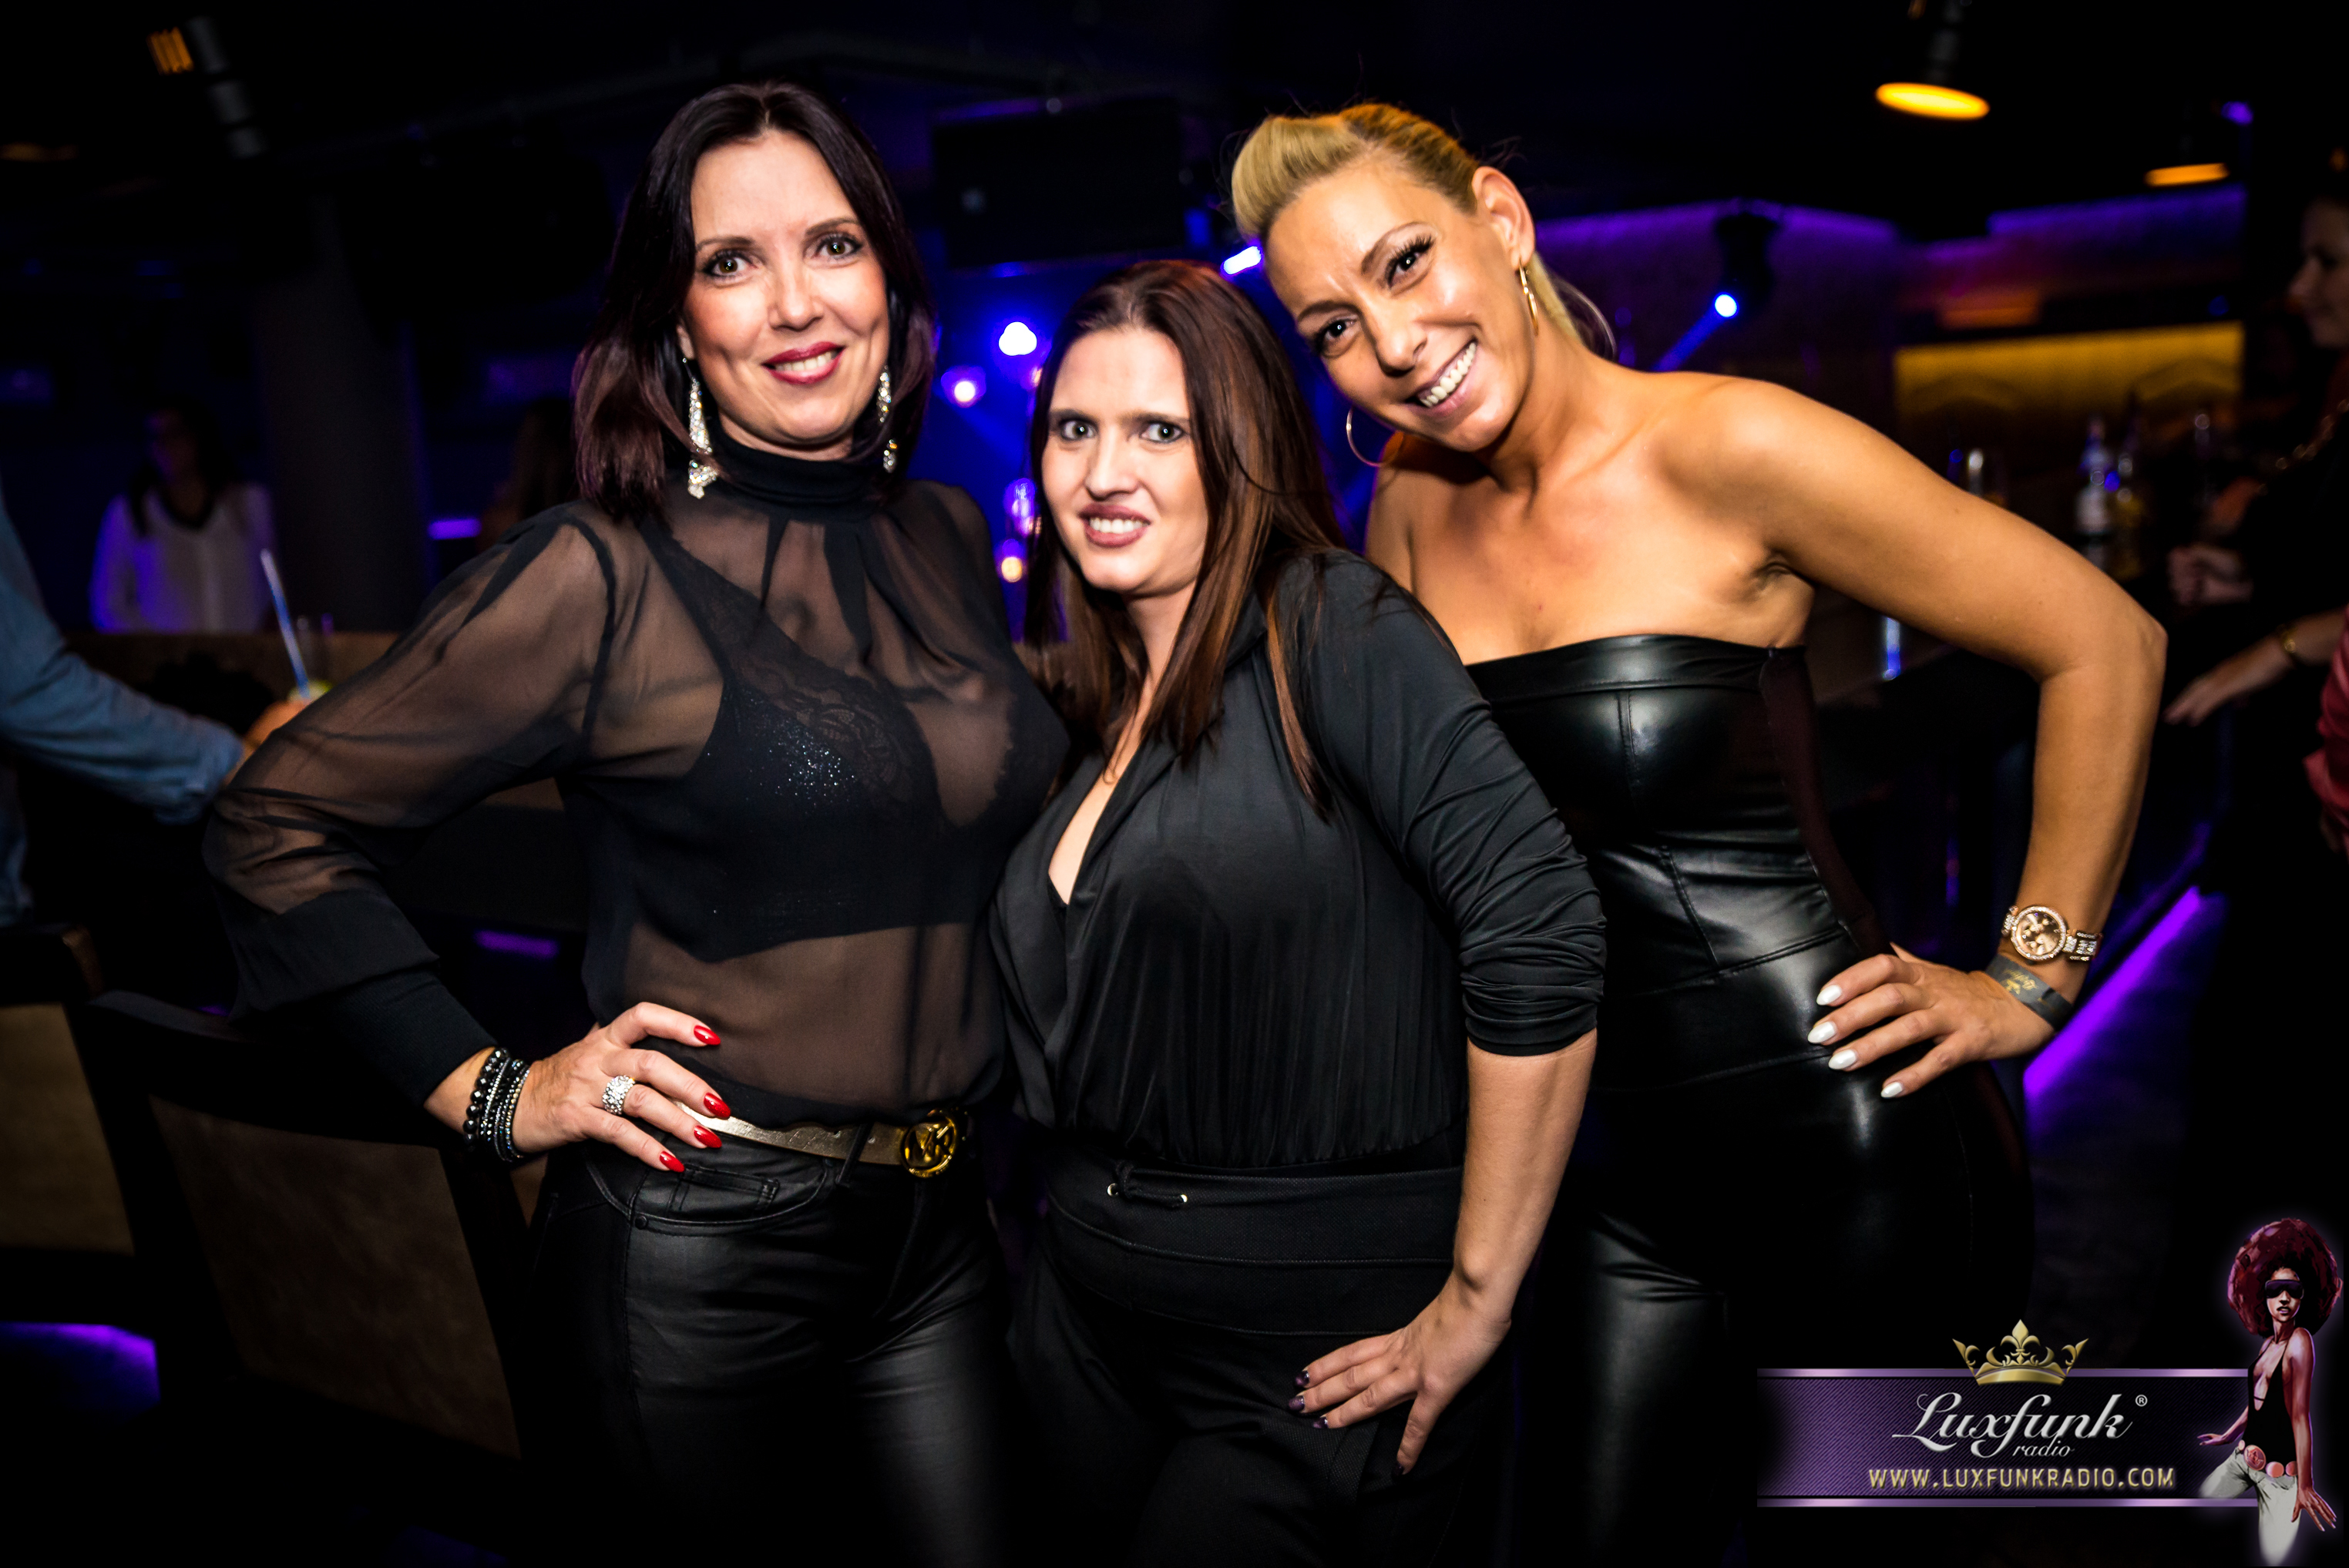 luxfunk-radio-funky-party-20191108-lock-budapest-1224